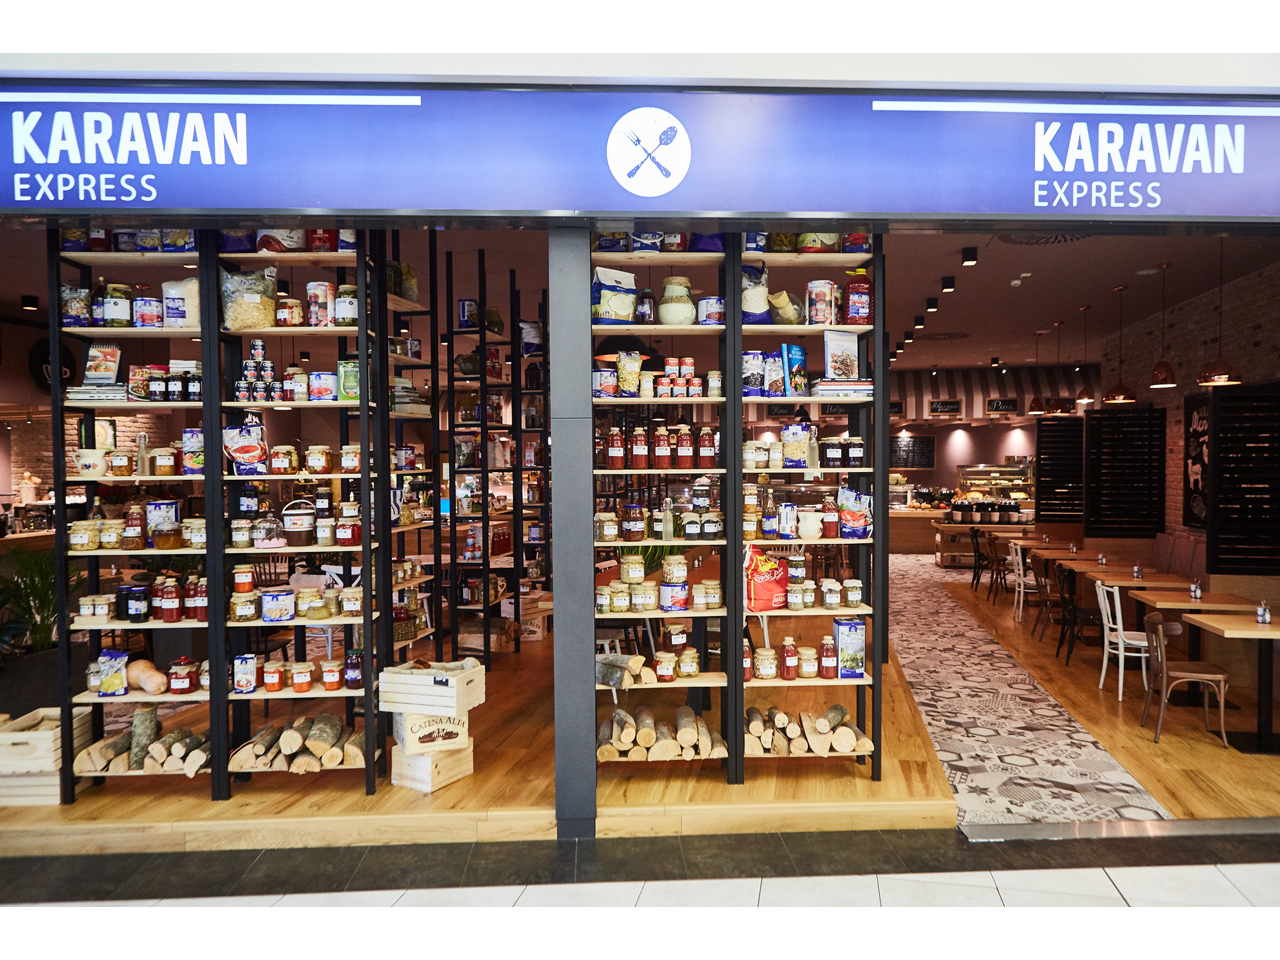 KARAVAN EXPRESS International cuisine Beograd